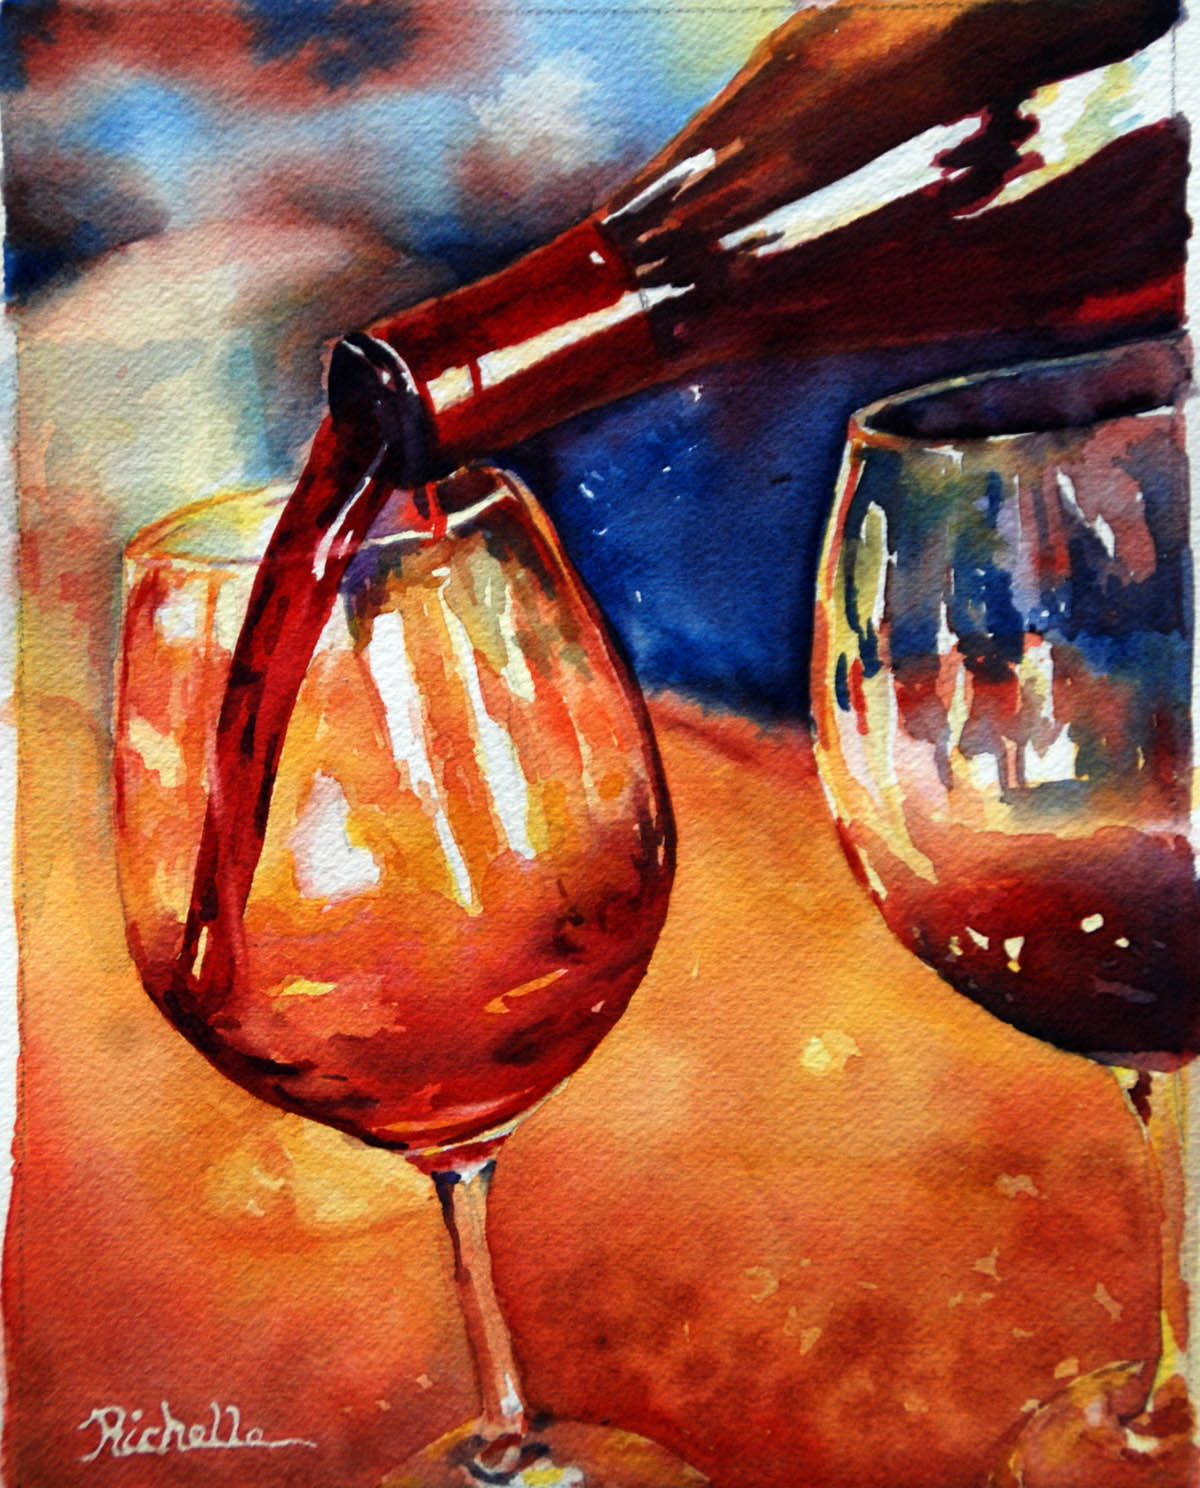 Pin By Richelle Siska On Art Studio Ideas Wine Art Vineyard Art Painted Wine Glass